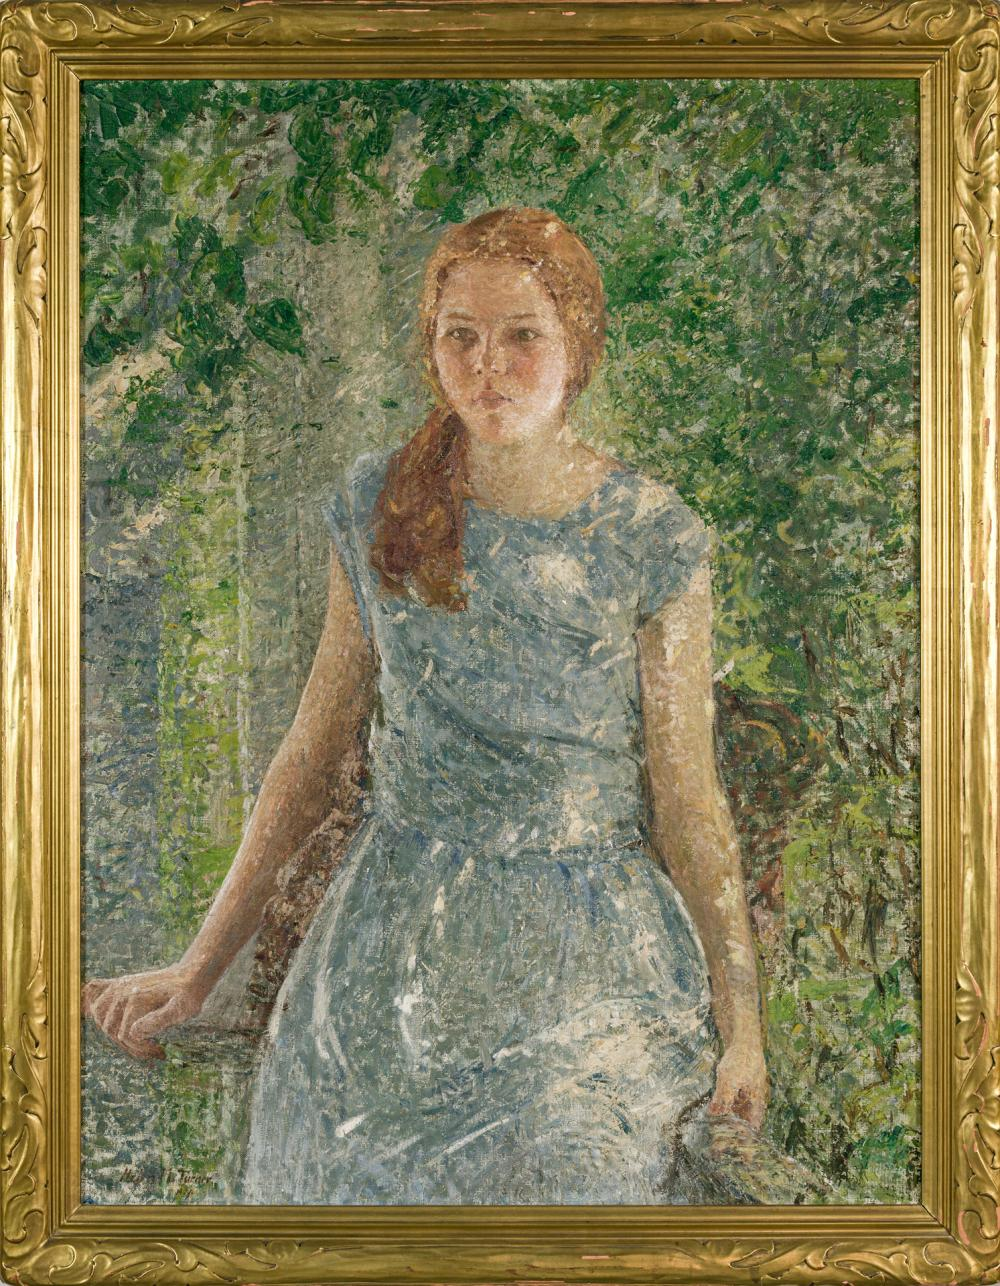 """HELEN MARIA TURNER, American (1858-1958), """"Portrait of Anne Spencer,"""" c. 1925, oil on canvas, signed and inscribed lower left """"Helen..."""